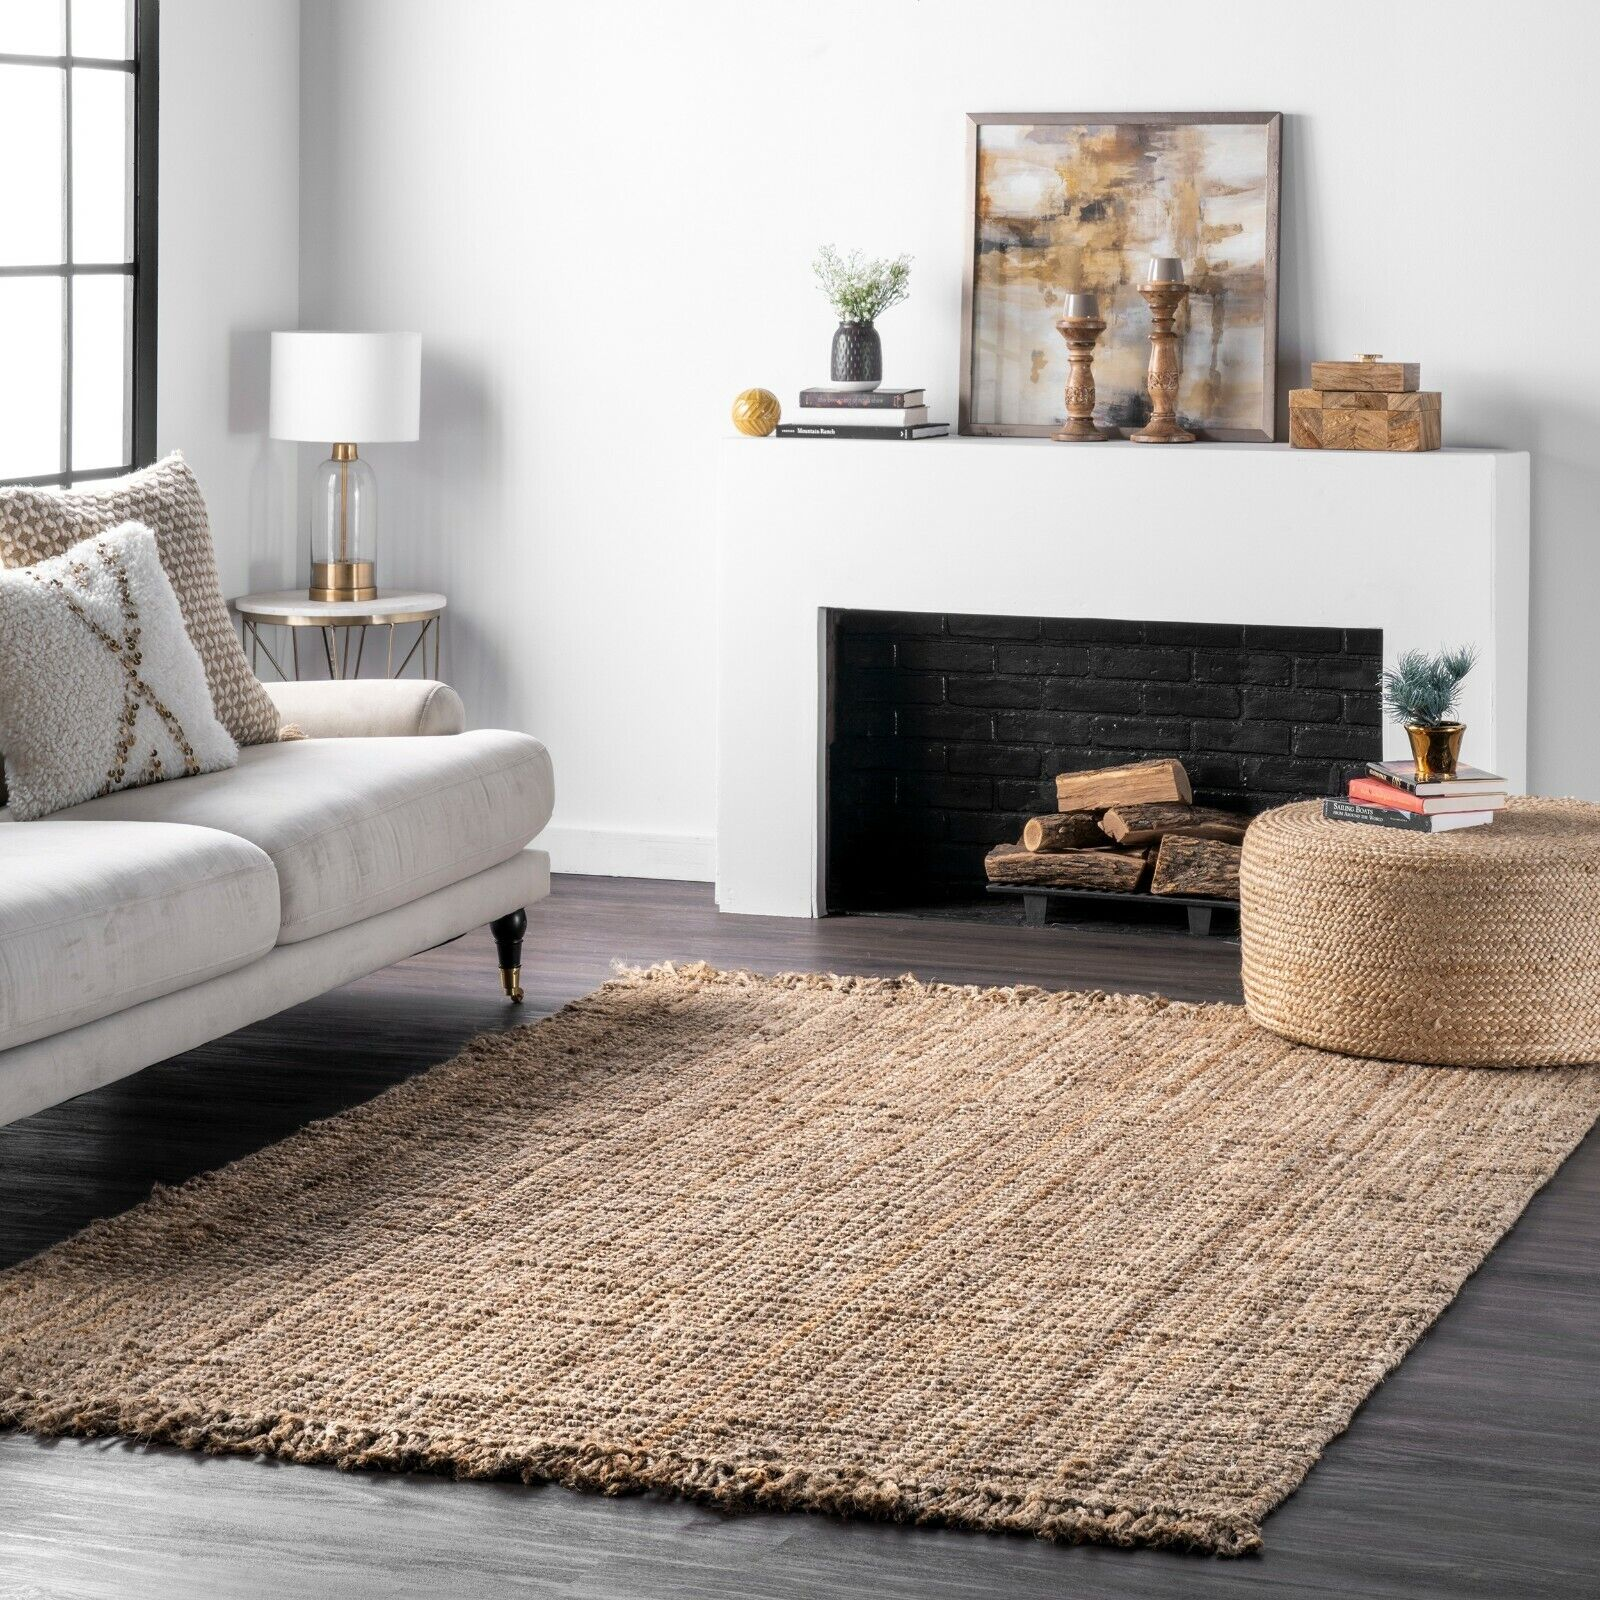 Picture of: Windward Natural Sheepskin Plush Area Rug Grey Color Approx 73 X43 9 10 For Sale Online Ebay